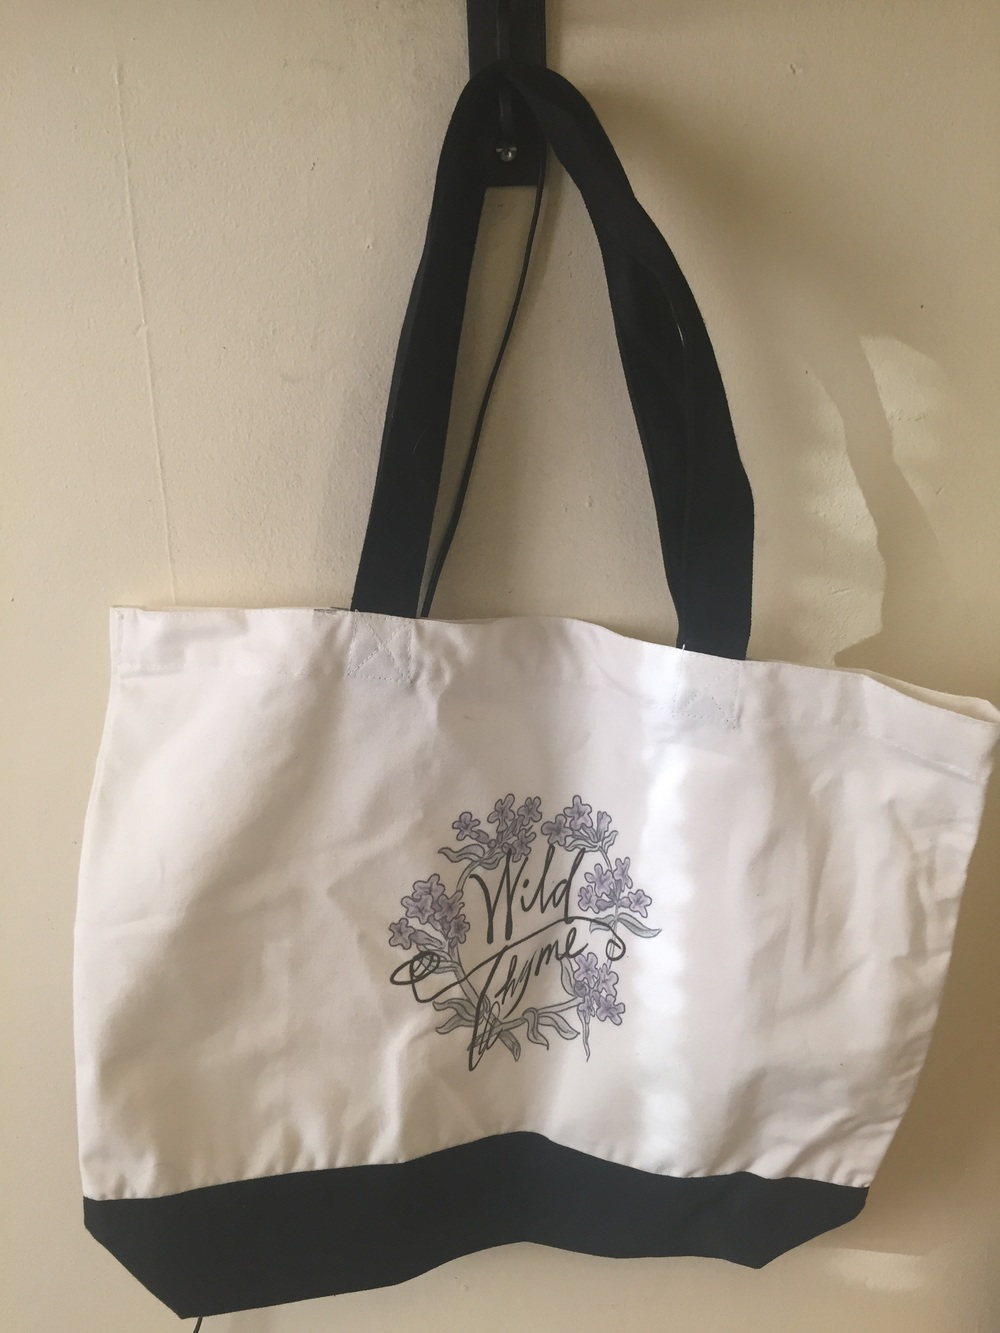 Big canvas tote $25